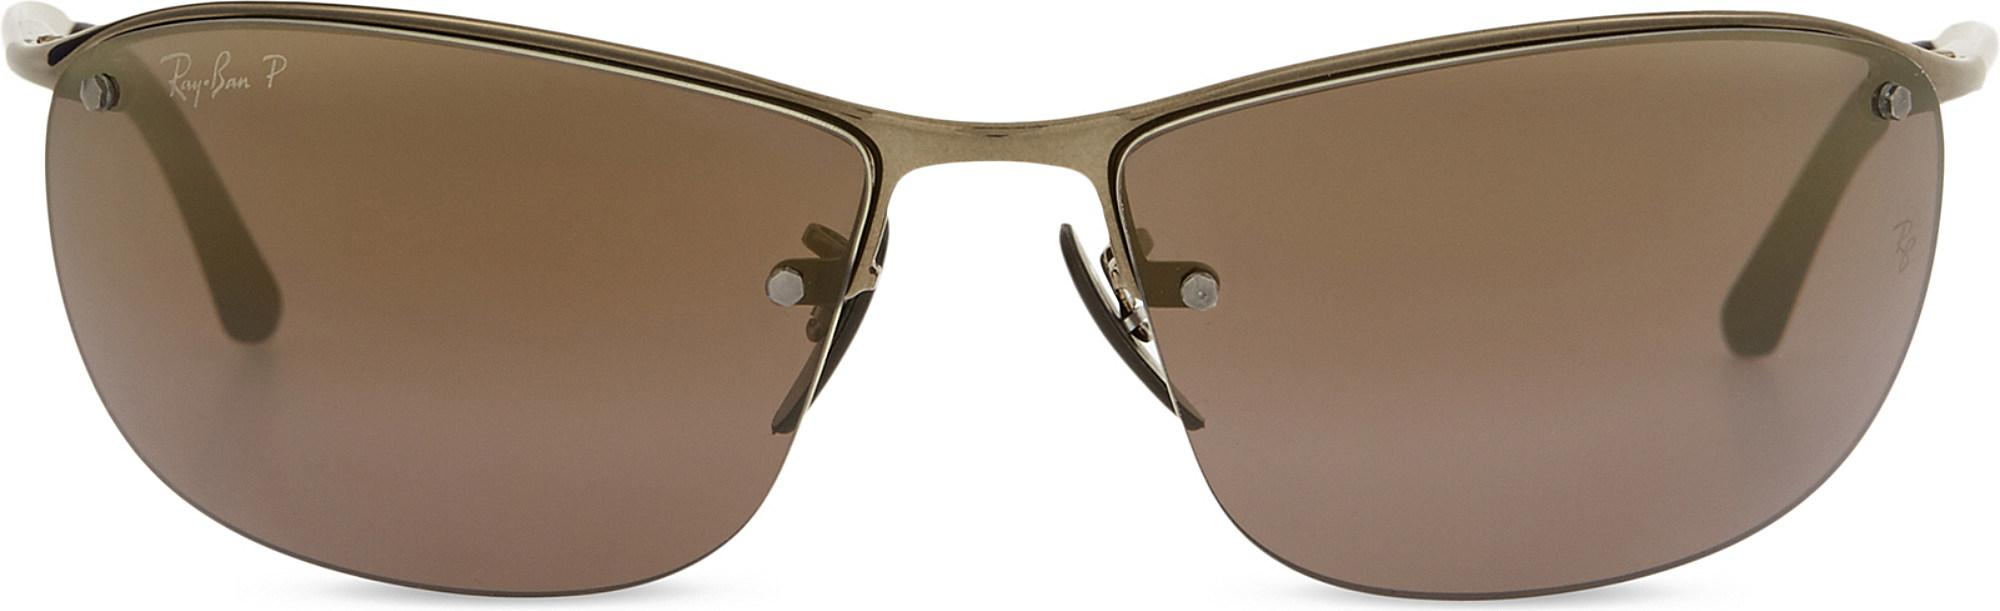 f808c92af98 Lyst - Ray-Ban Rb3542 Chromance Rectangle-frame Sunglasses in Brown ...